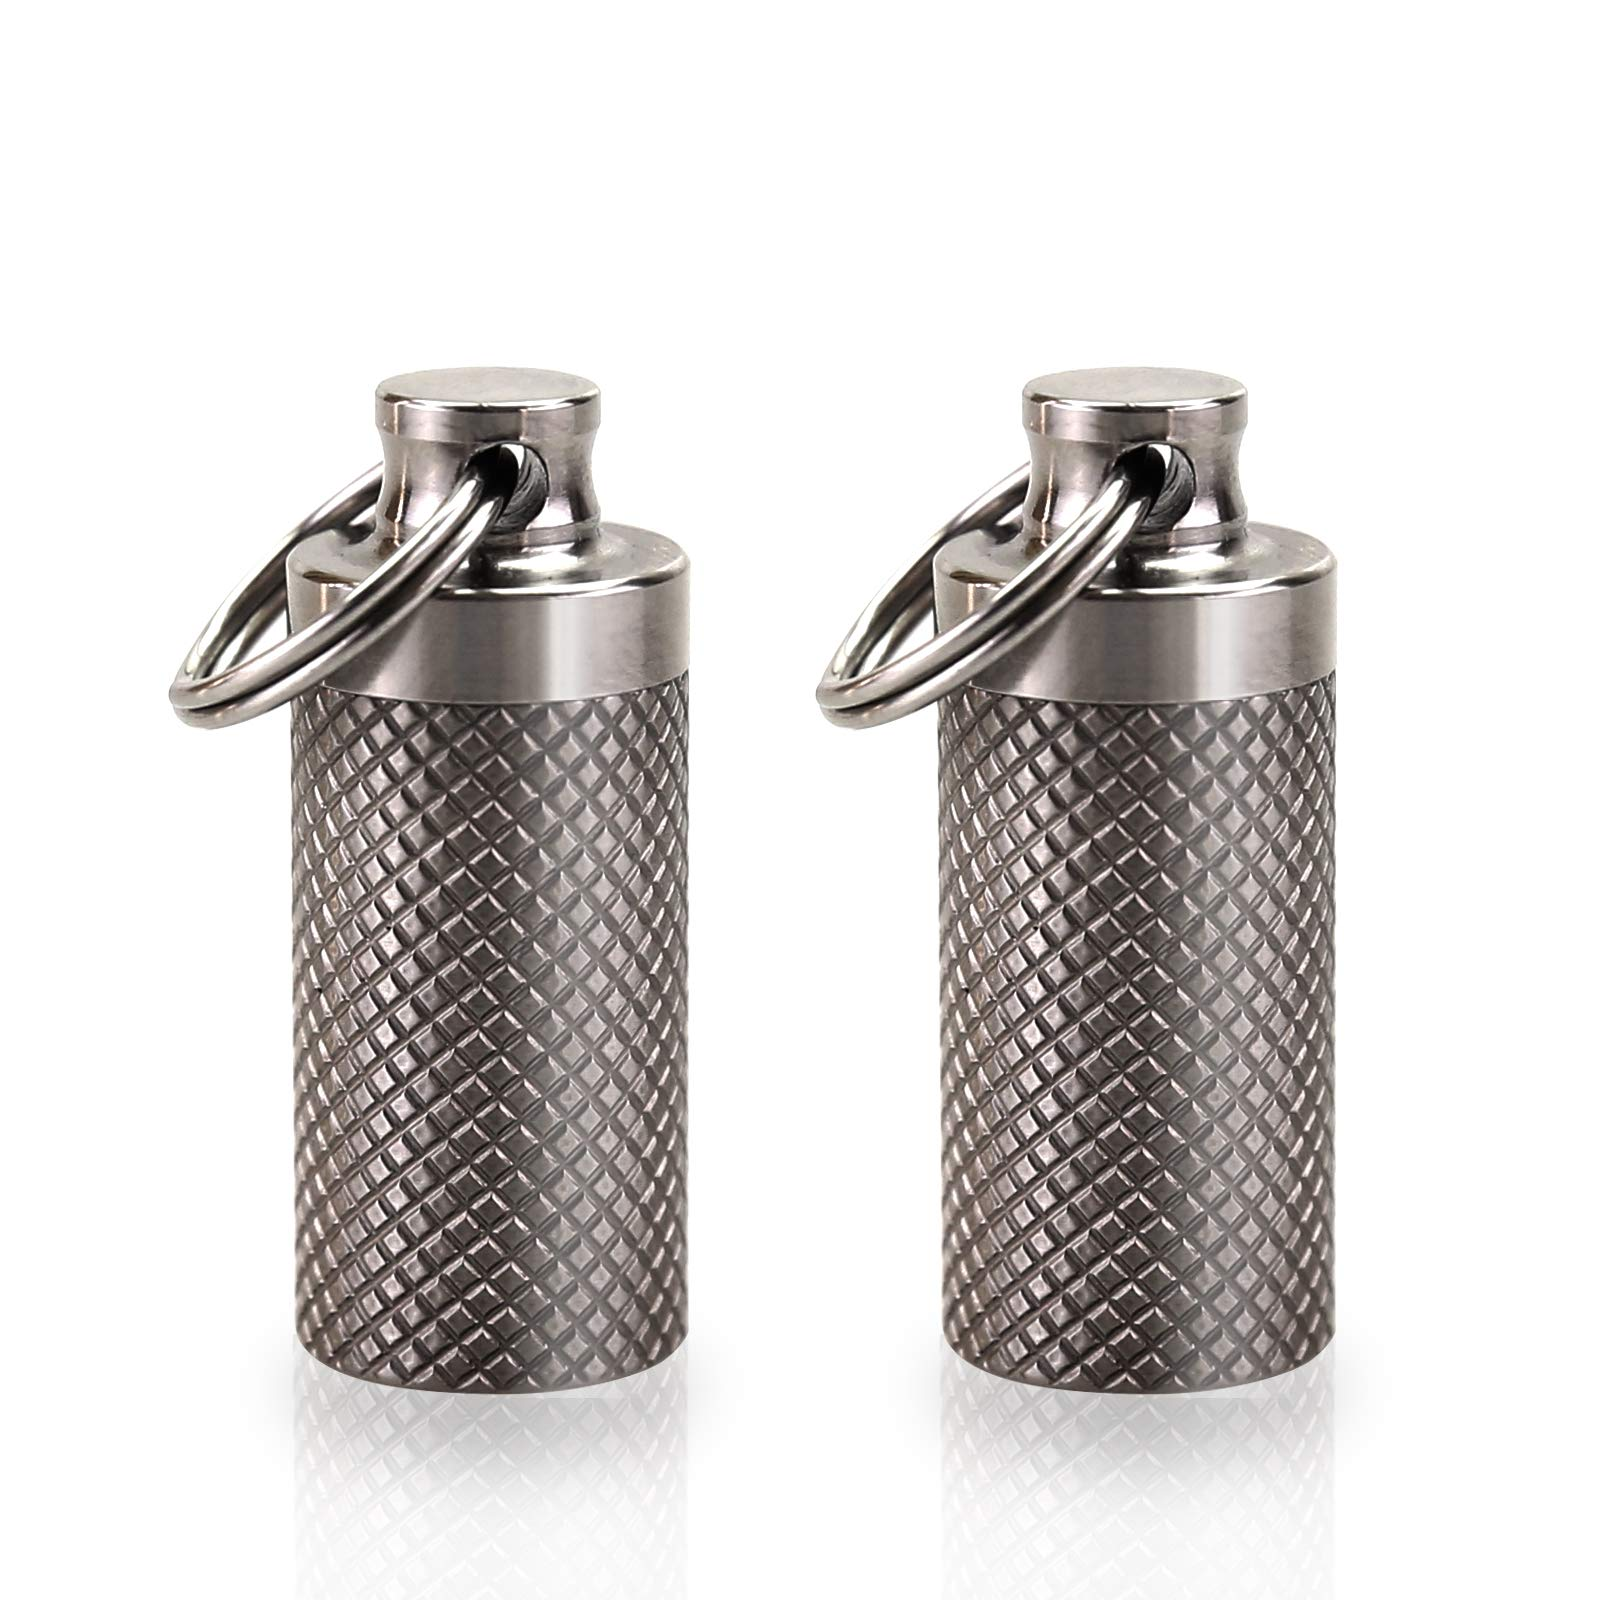 Tisky Keychain Pill Holder,Portable Titanium Waterproof Pill Box Container,Mini Pill Case for Outdoor Travel Purse or Pocket(2PCS) by Tisky